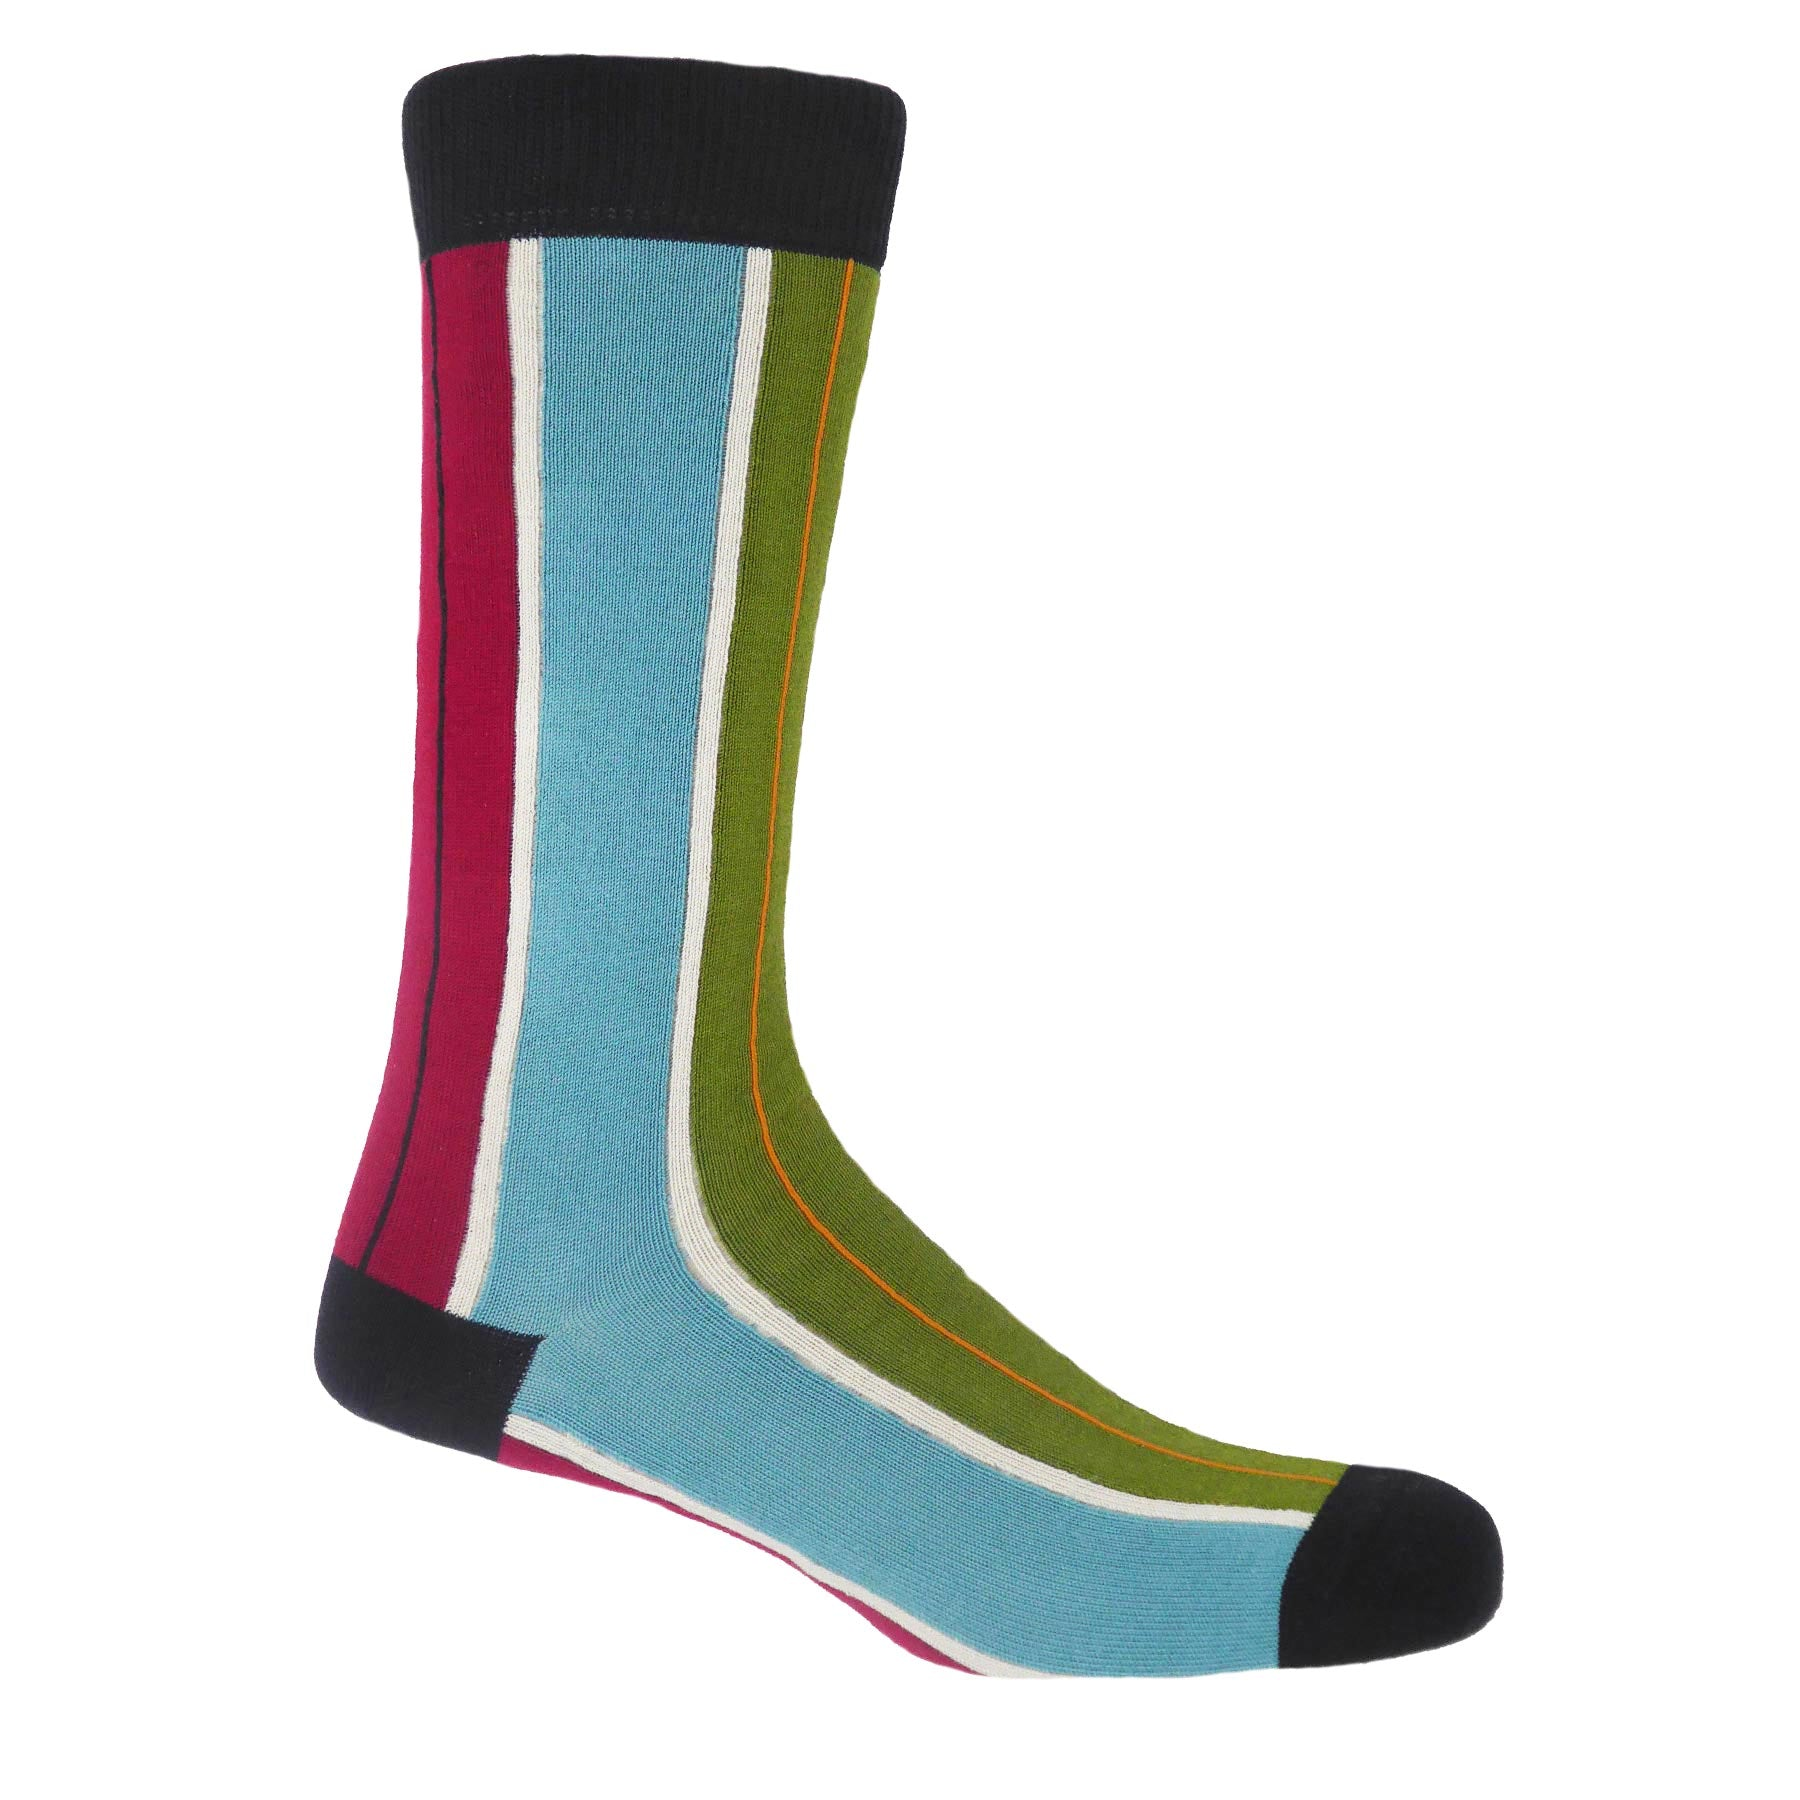 Hampton Men's Socks - Light Blue